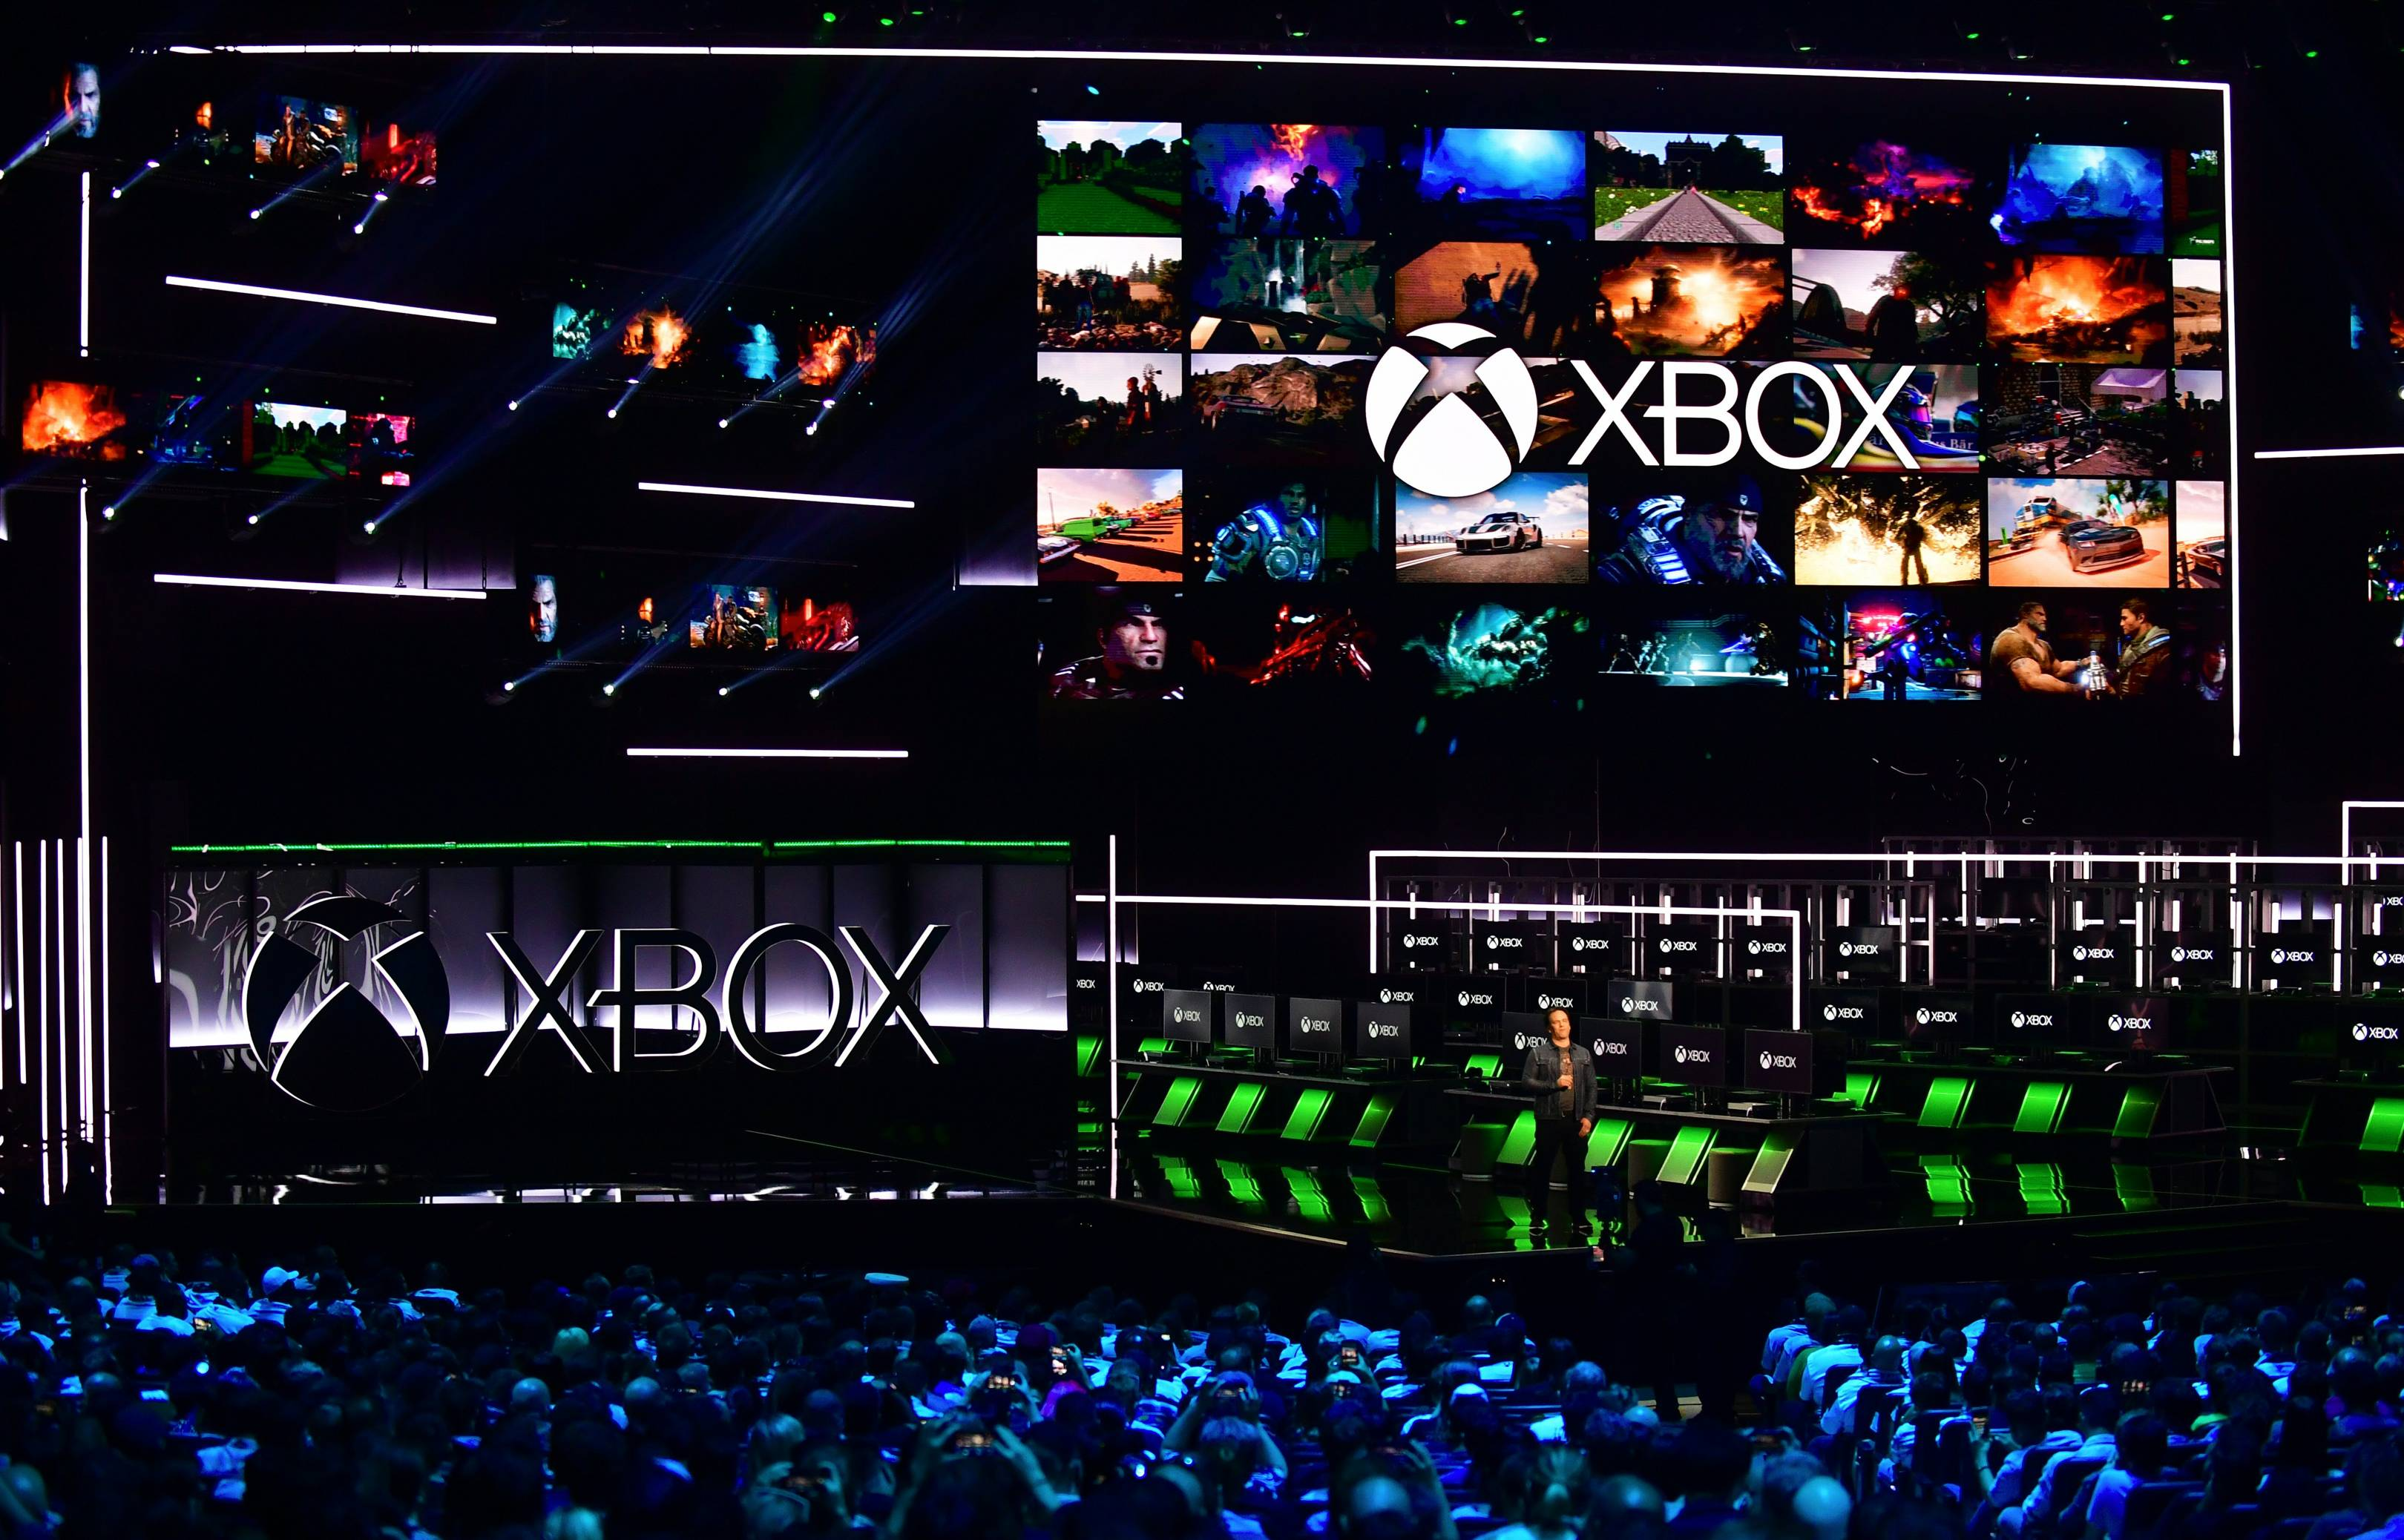 Microsoft's E3 2018 conference shows that Xbox is (sort of